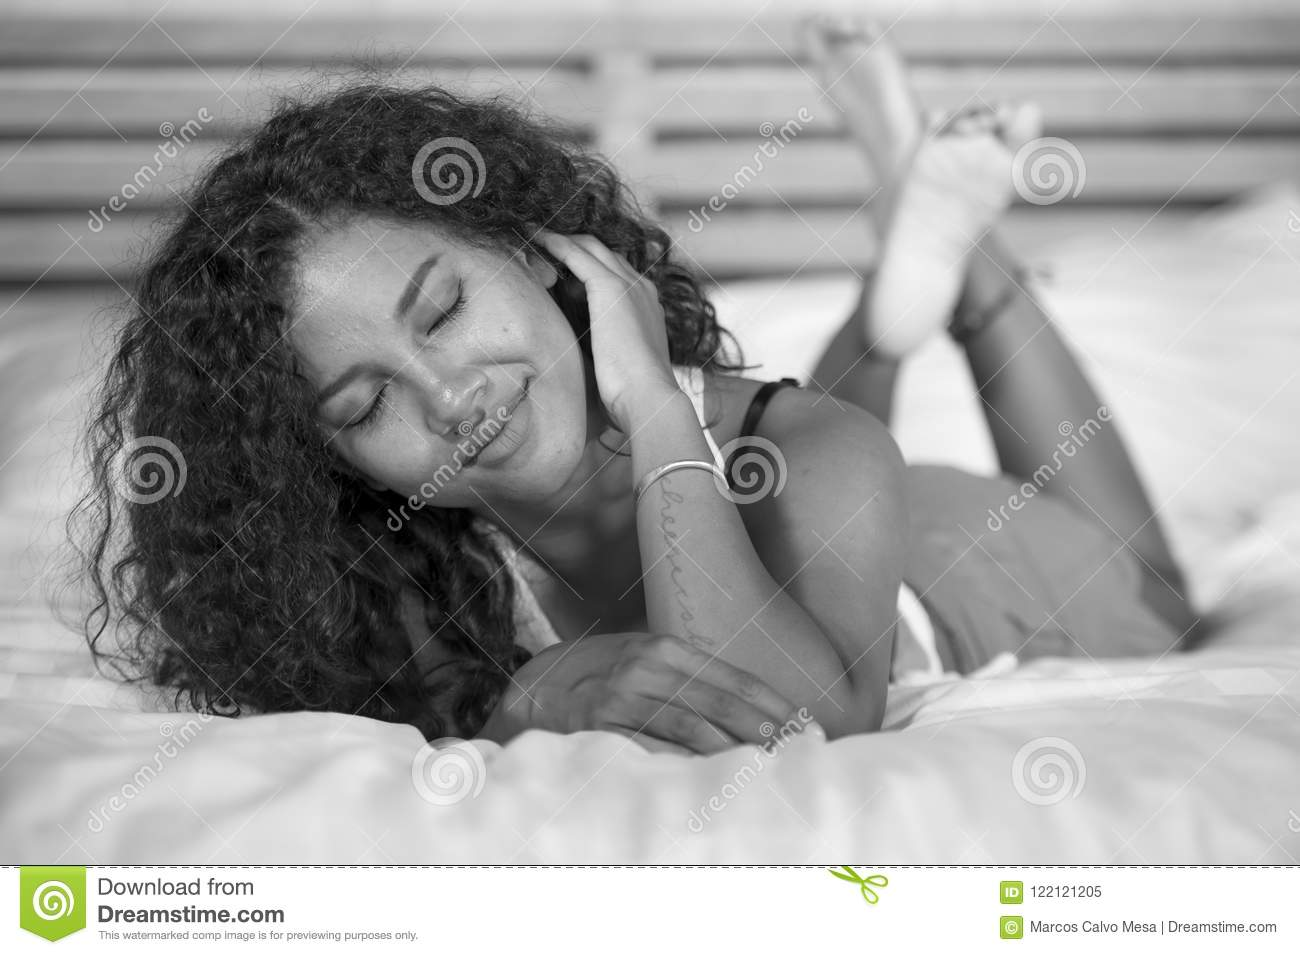 Lifestyle black and white portrait of young happy and gorgeous hispanic woman posing and playful at home bedroom lying relaxe